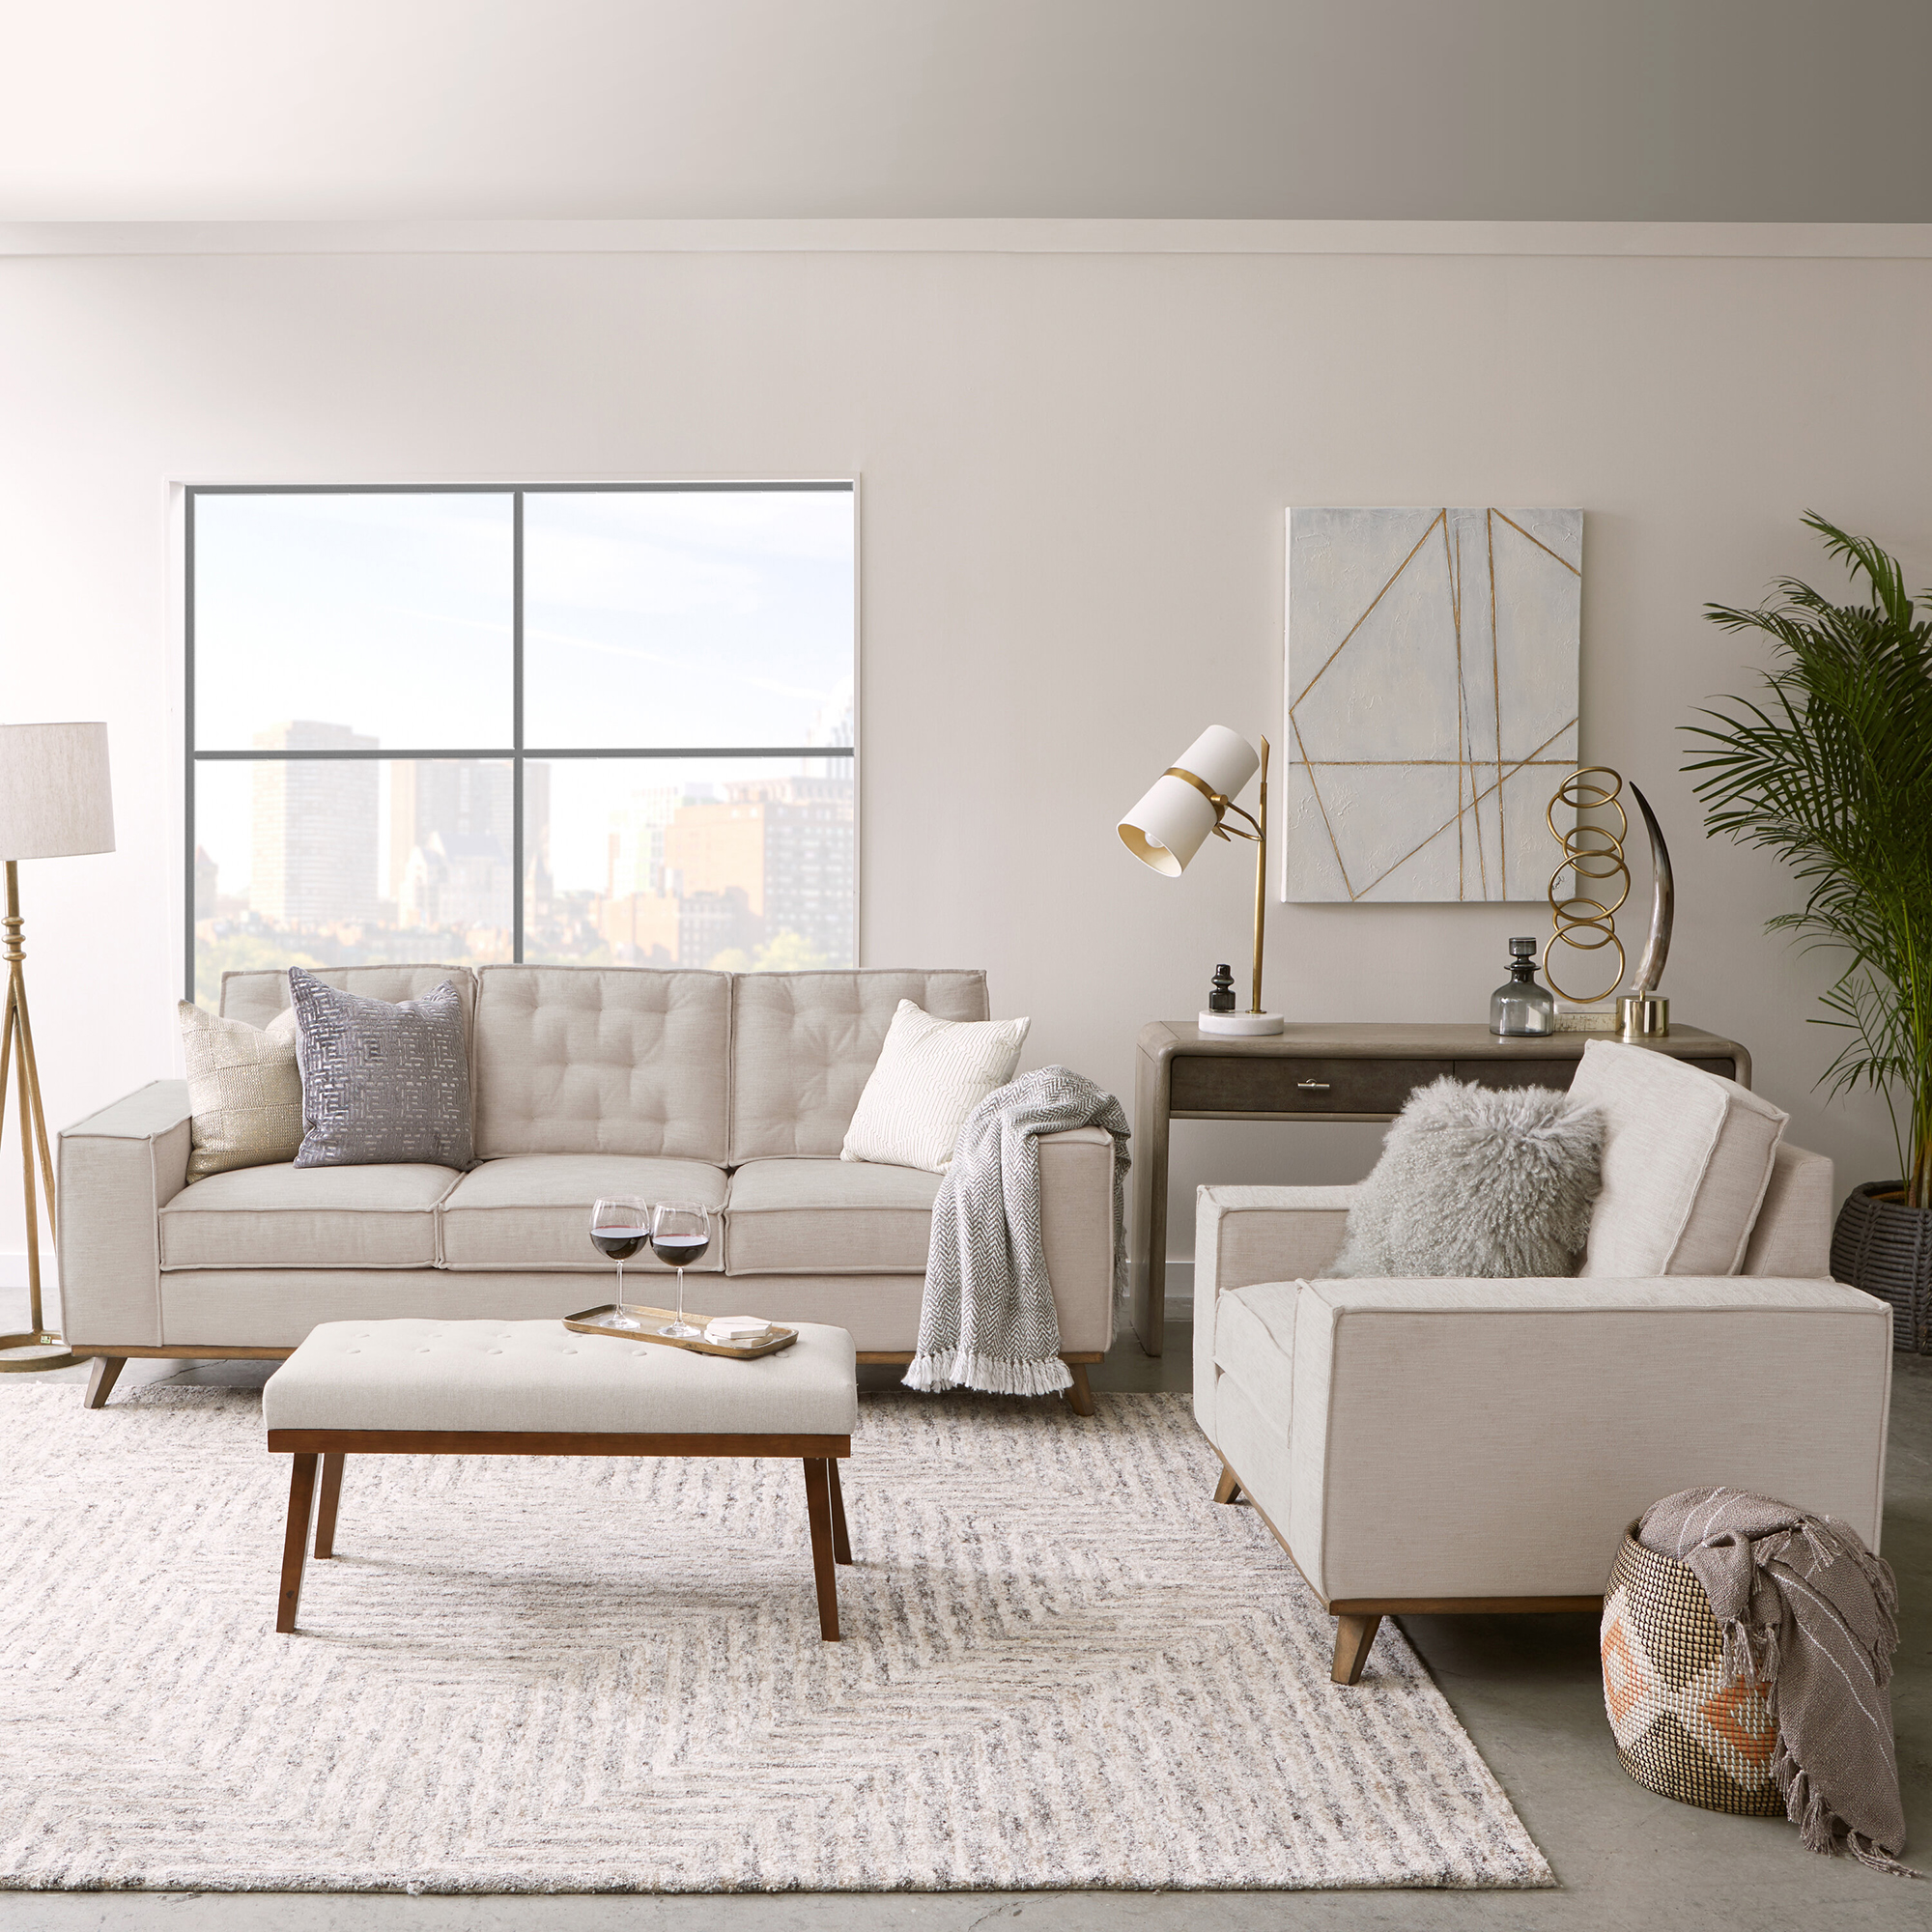 5 Ideas To Make Your Living Room Feel Cozy